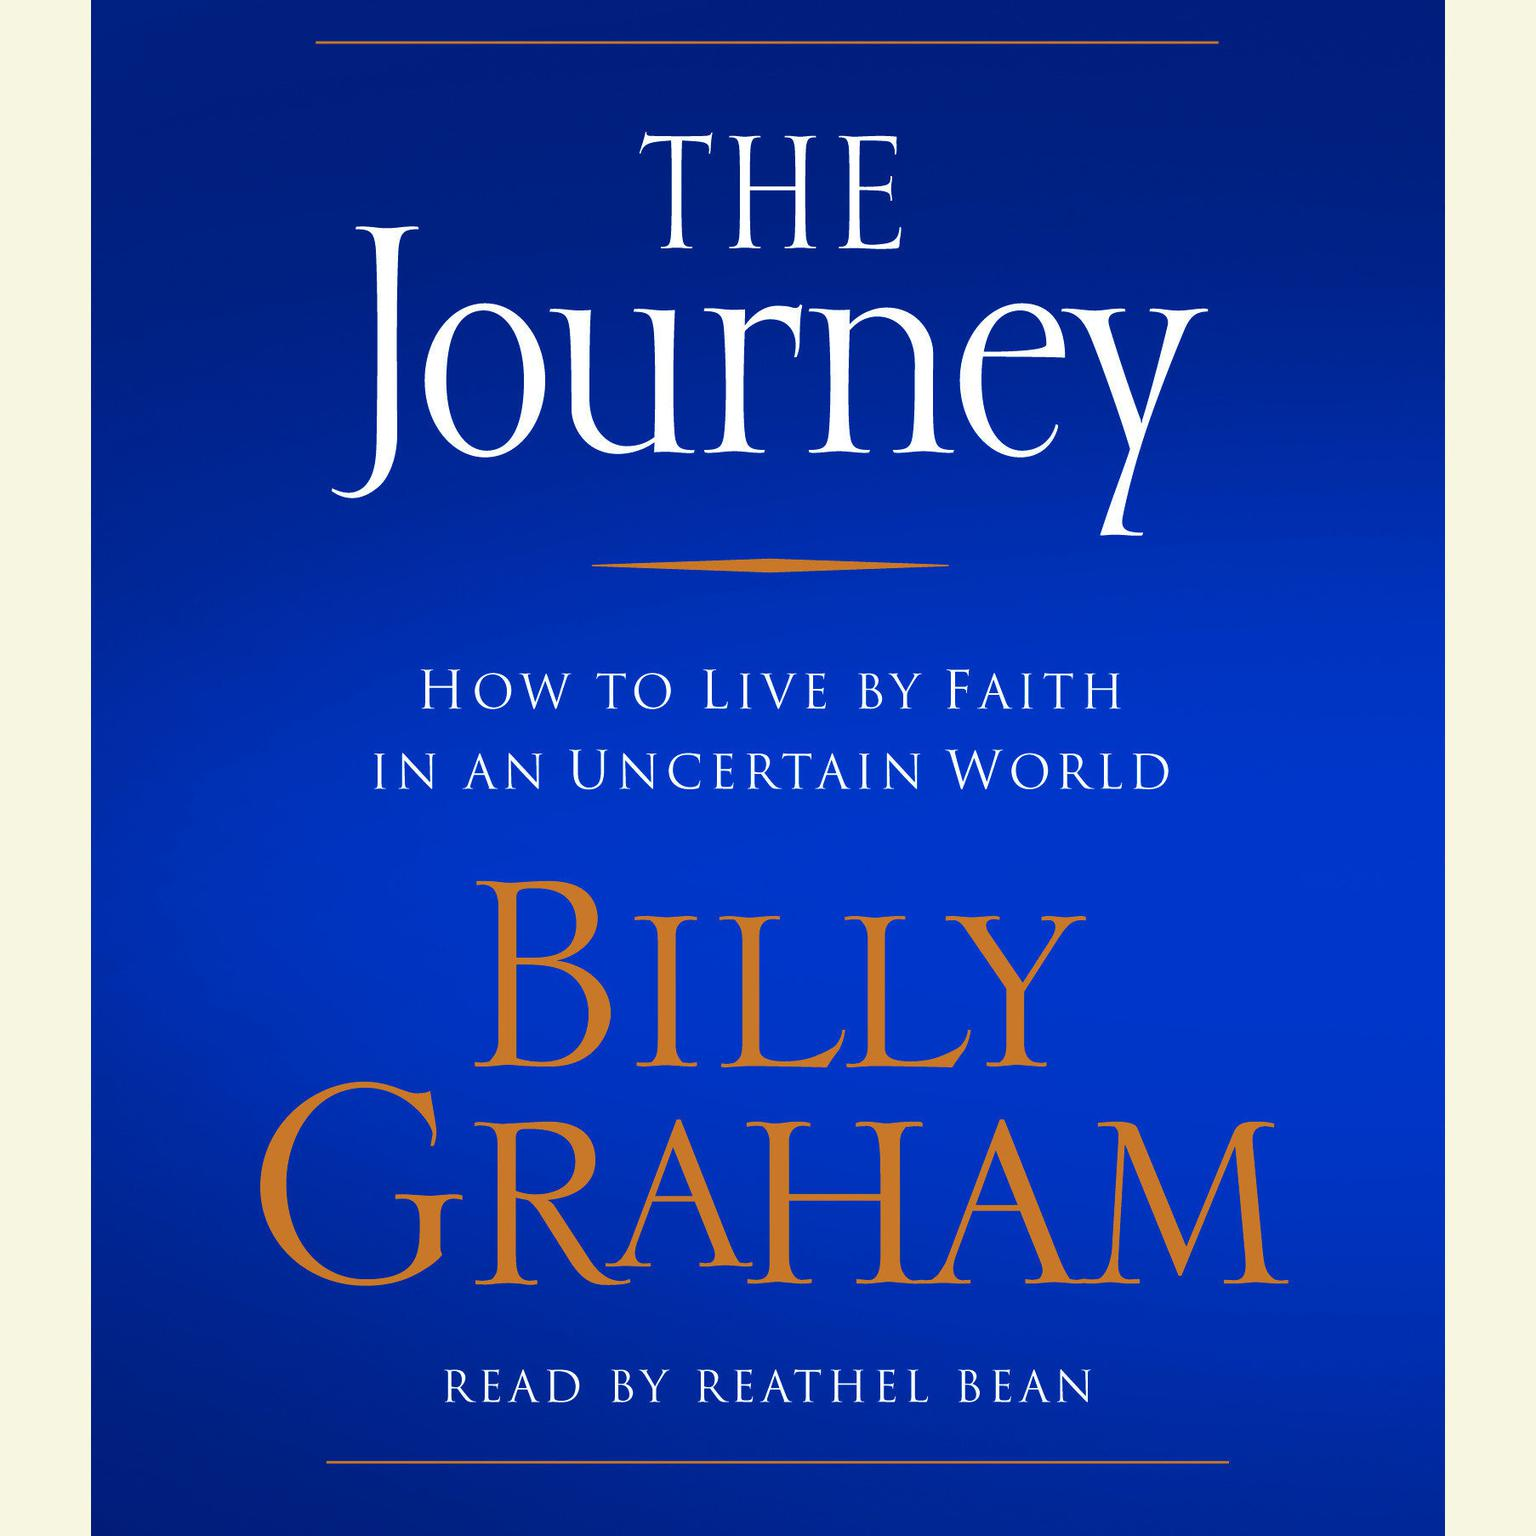 Printable The Journey: How to Live by Faith in an Uncertain World Audiobook Cover Art